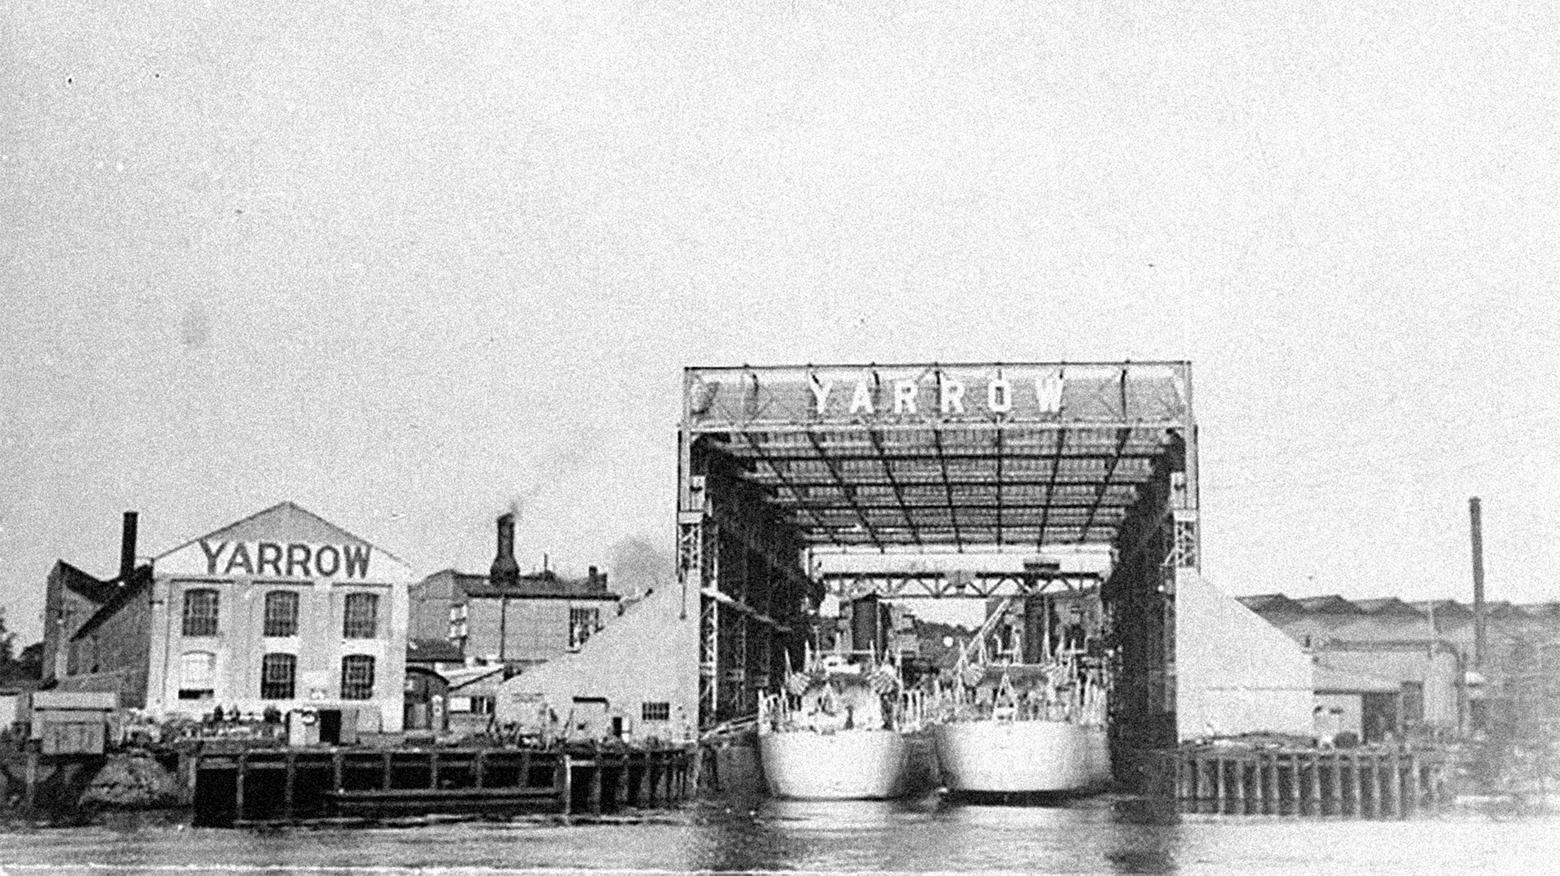 Yarrow Shipyard